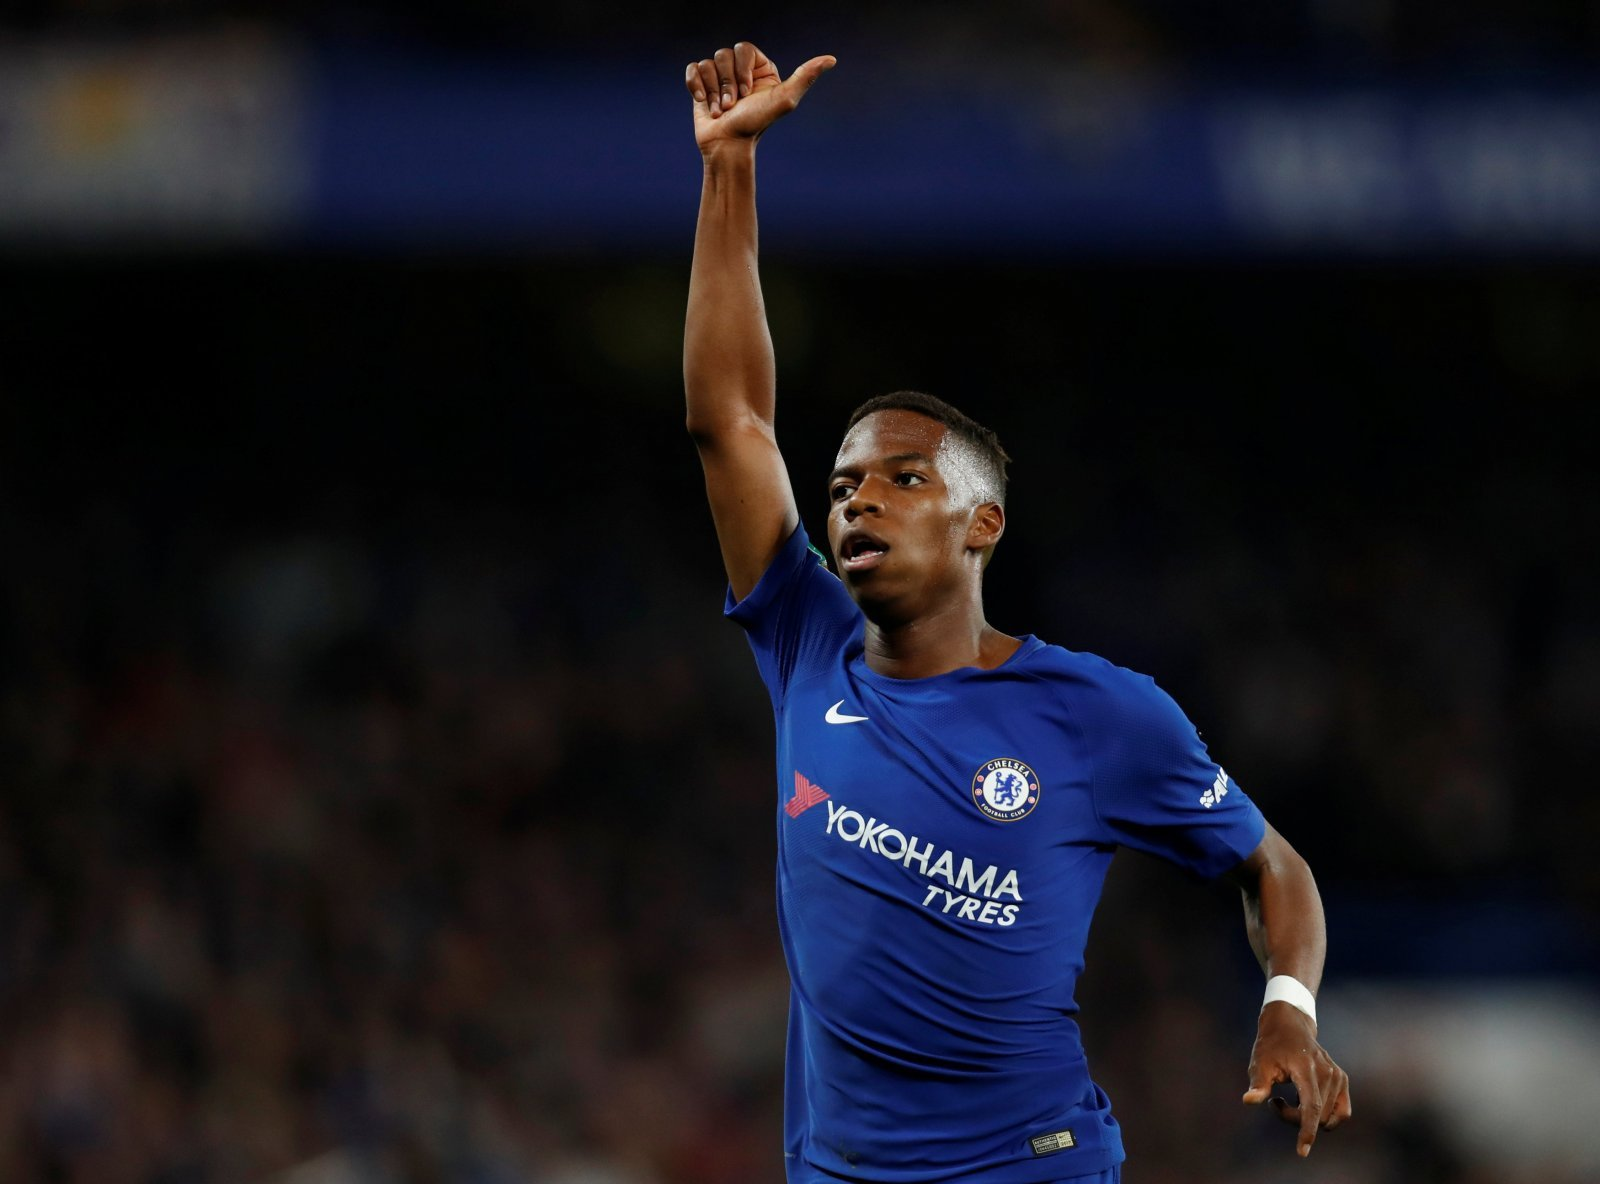 Musonda signing would give West Brom tools for promotion